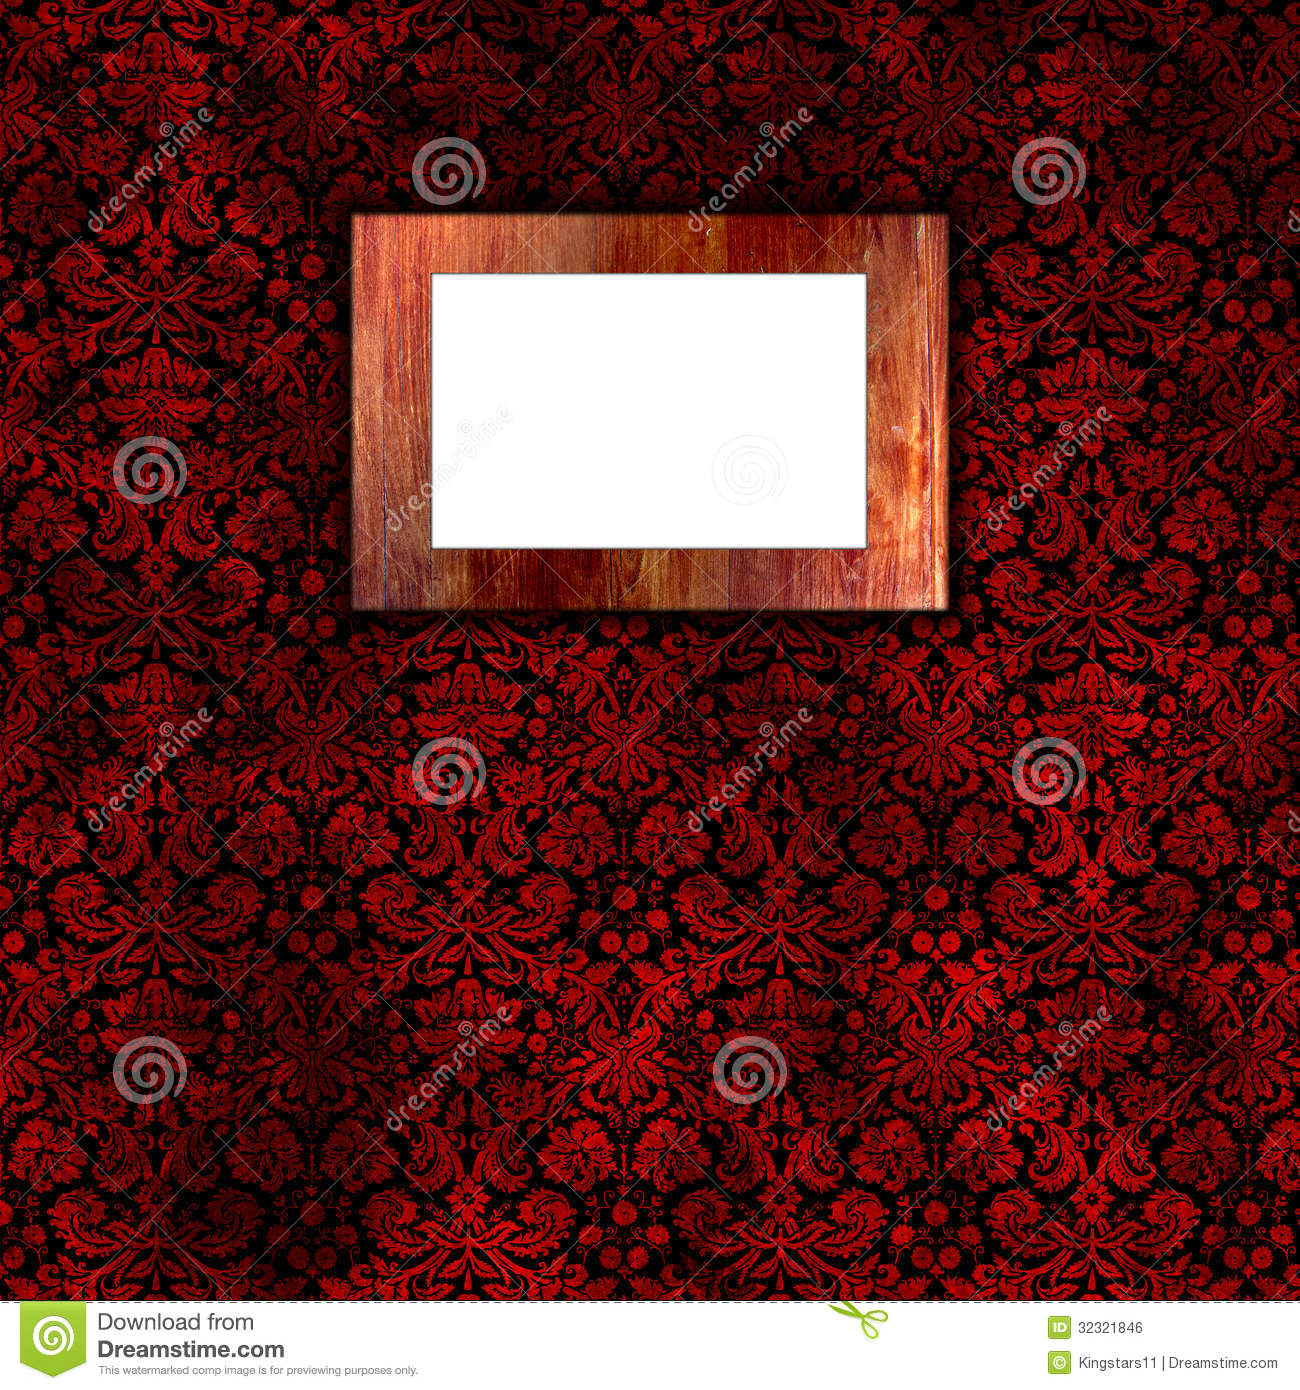 Damask wallpaper with wooden frame 3 Royalty Free Stock Image - Red Damask Wallpaper Stock Photo - Image: 9894070